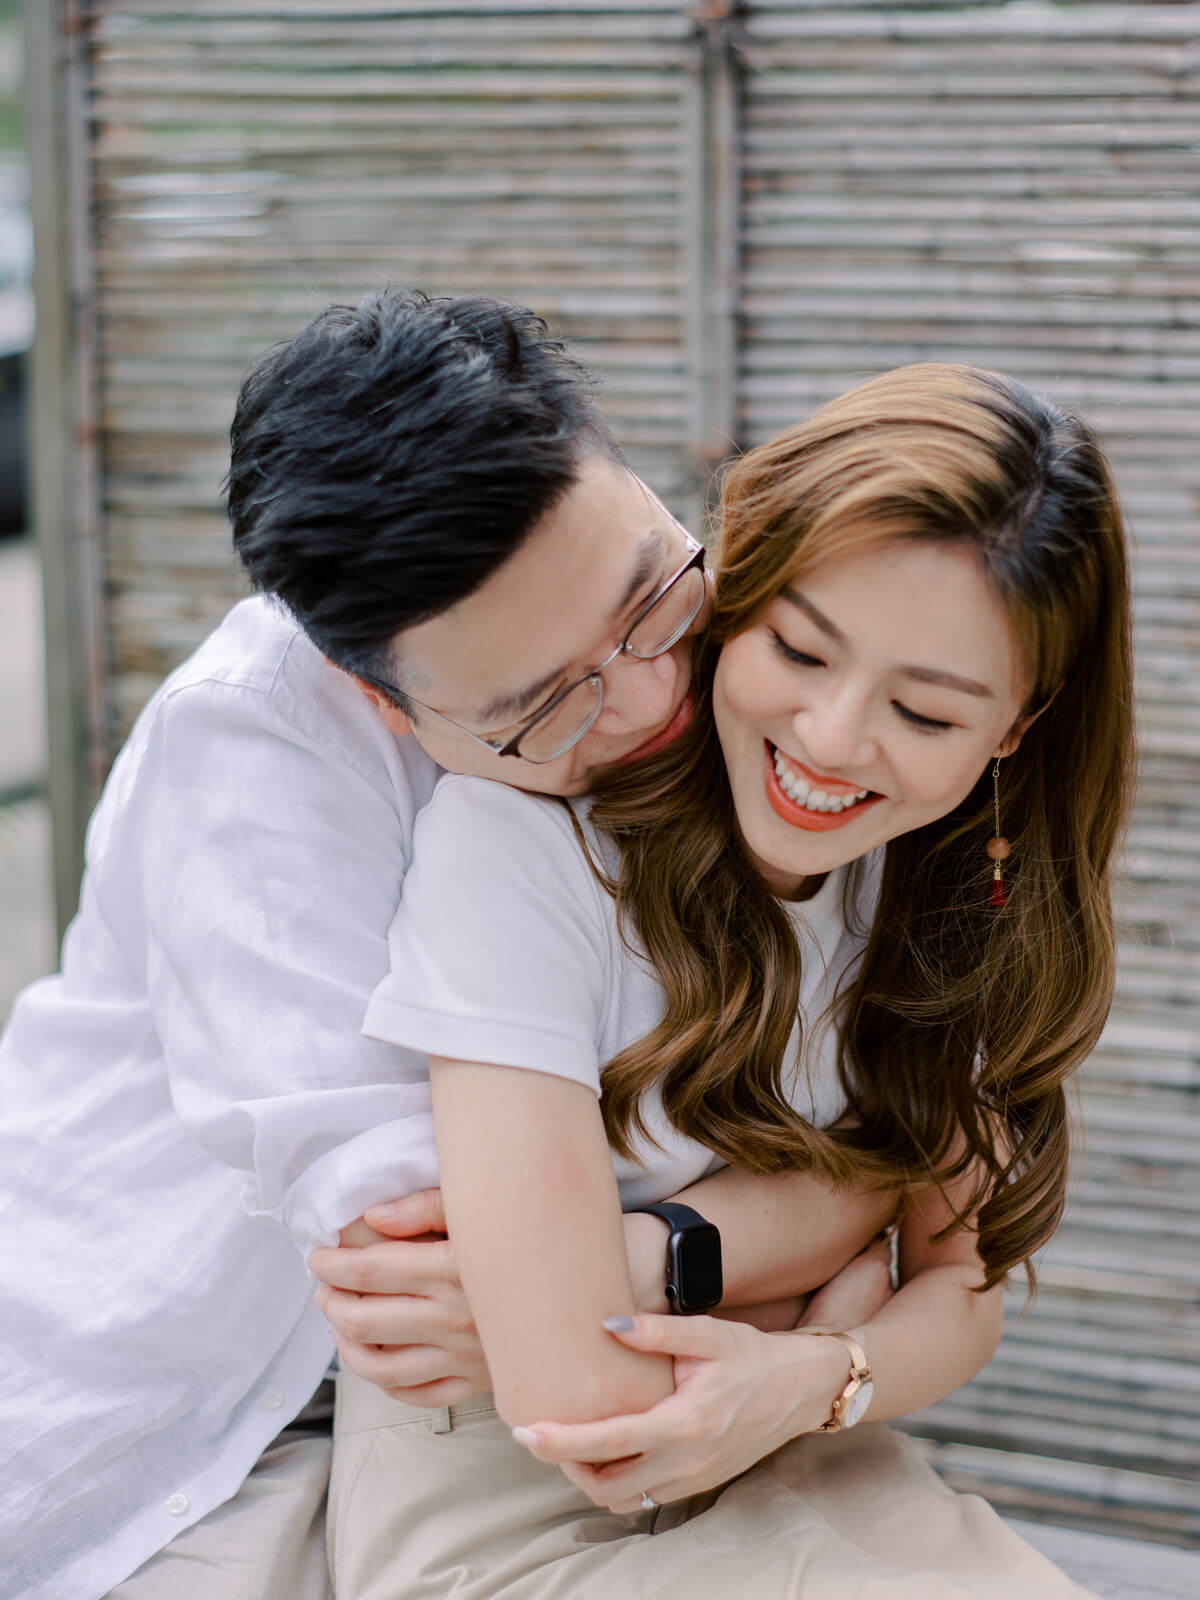 nikkiloveu-hongkong-prewedding-engagement-taipo-casual-cafe-023.jpg